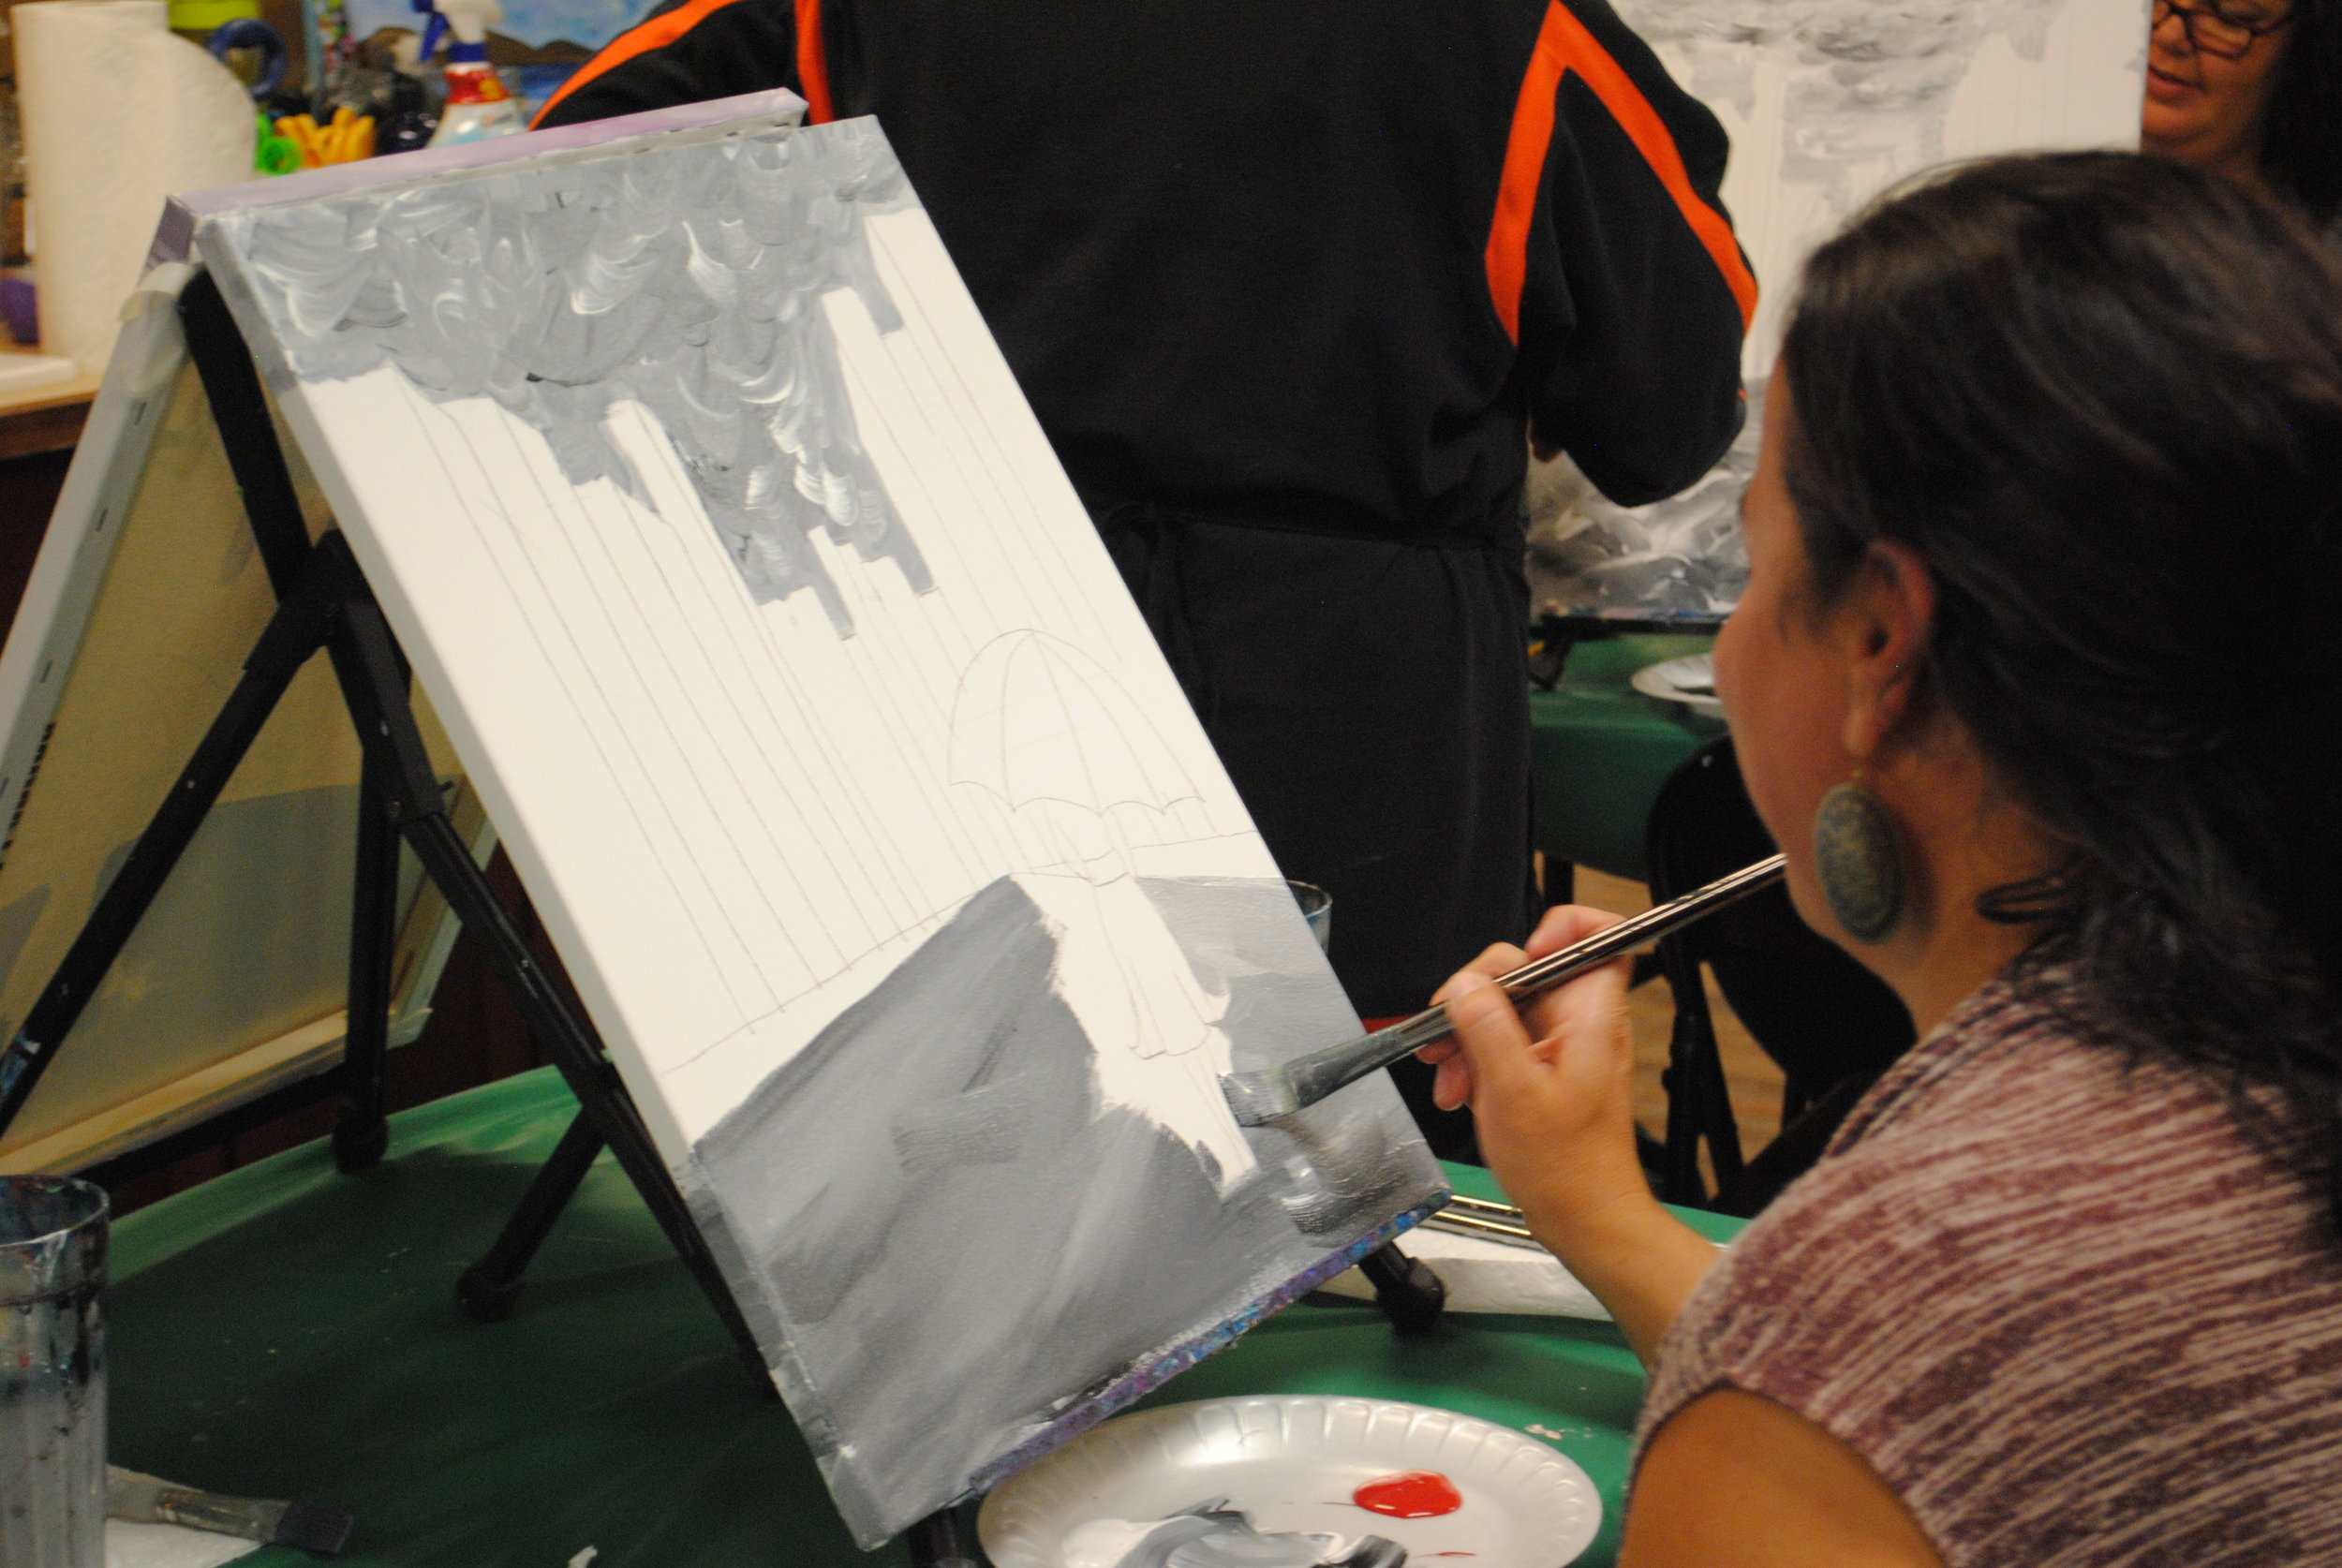 ART 4 JOY - Sip n' Paint - Central Point - What to do in Southern Oregon - Things to do - Events - Girls Night - Family - Kids (9).JPG